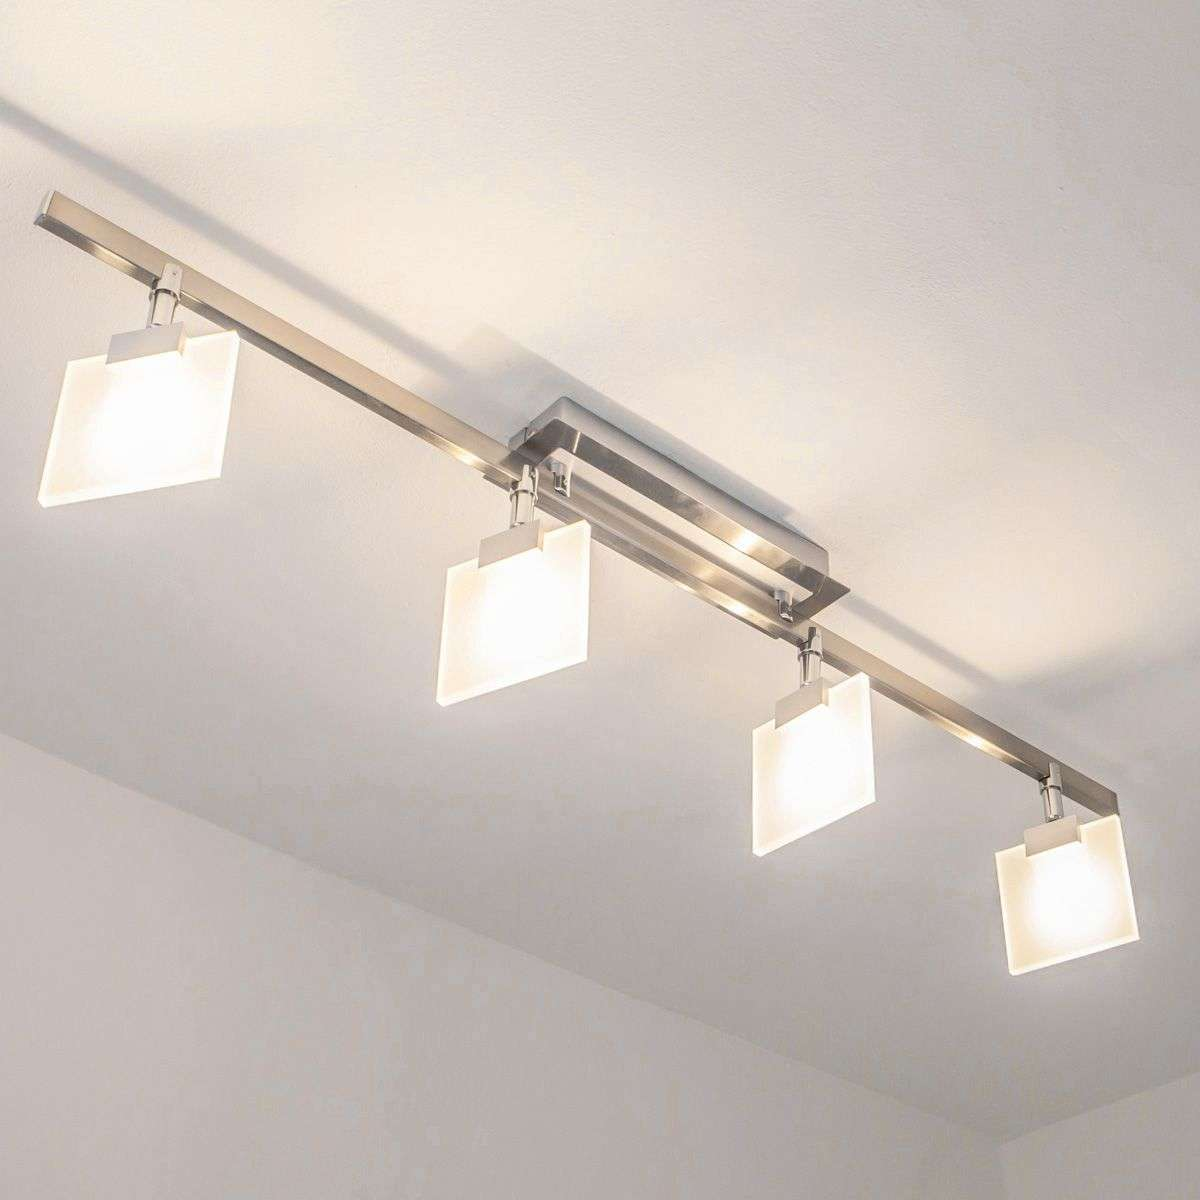 Livius kitchen ceiling light with COB LEDs : kitchen ceiling lights uk - www.canuckmediamonitor.org